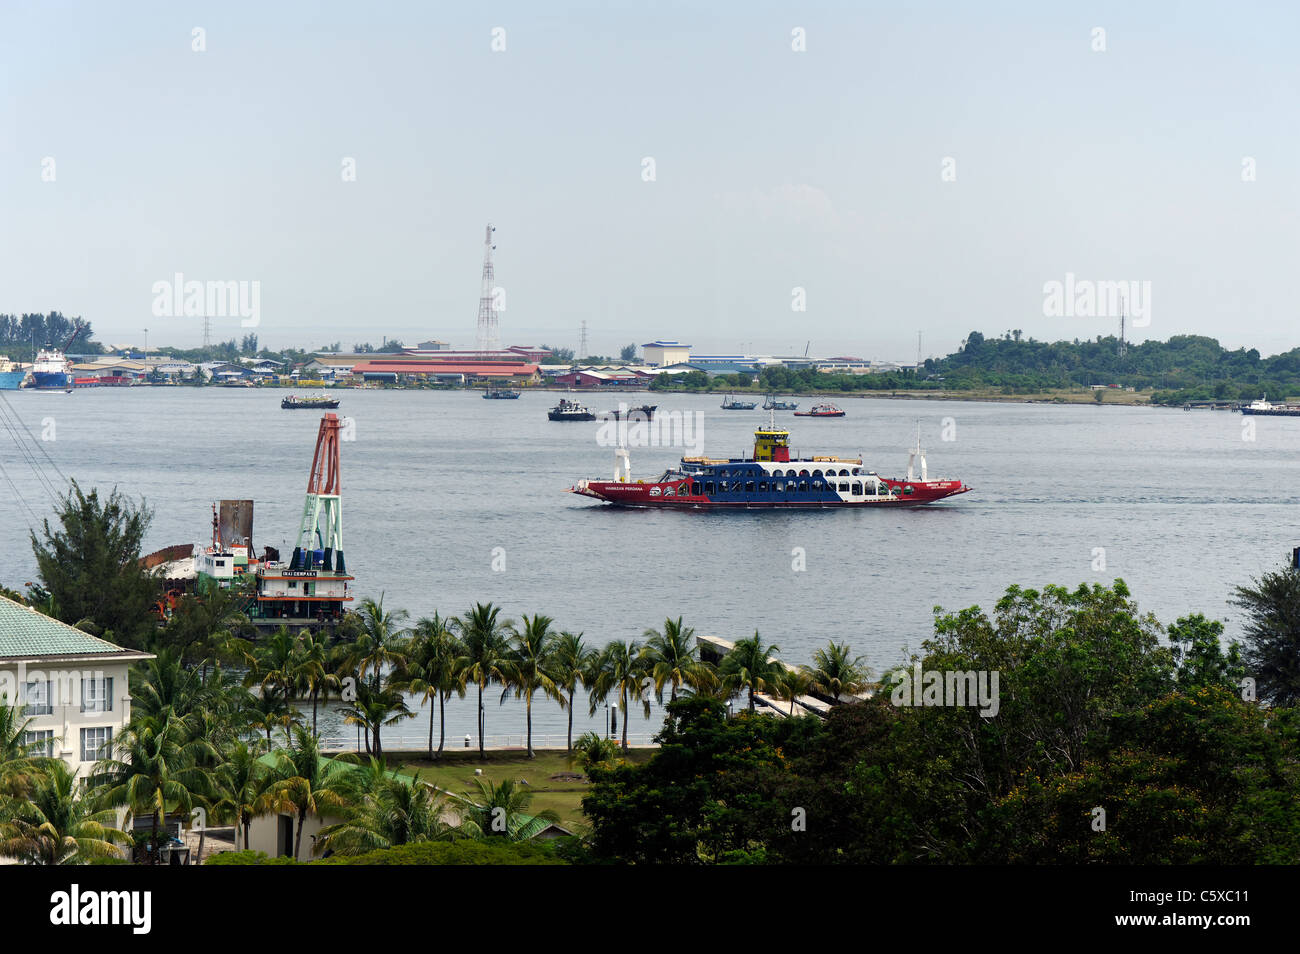 A ferry passing shipping and boats in Labuan, Malaysia - Stock Image